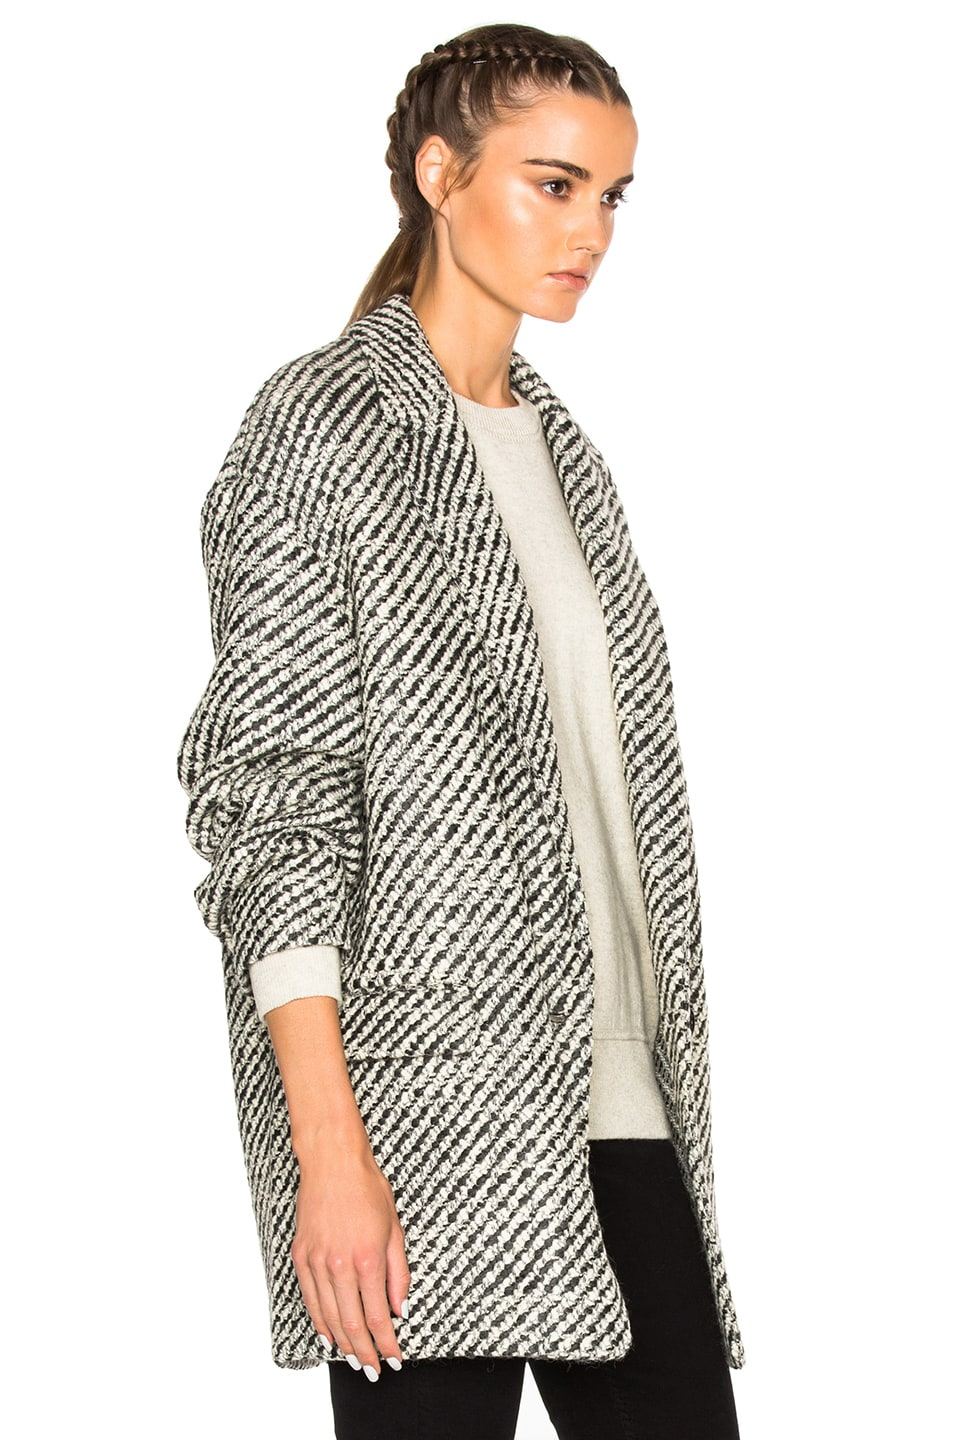 b8c8f10cac0 Image 4 of Isabel Marant Ilaria Tweedy Coat in Ecru Grey